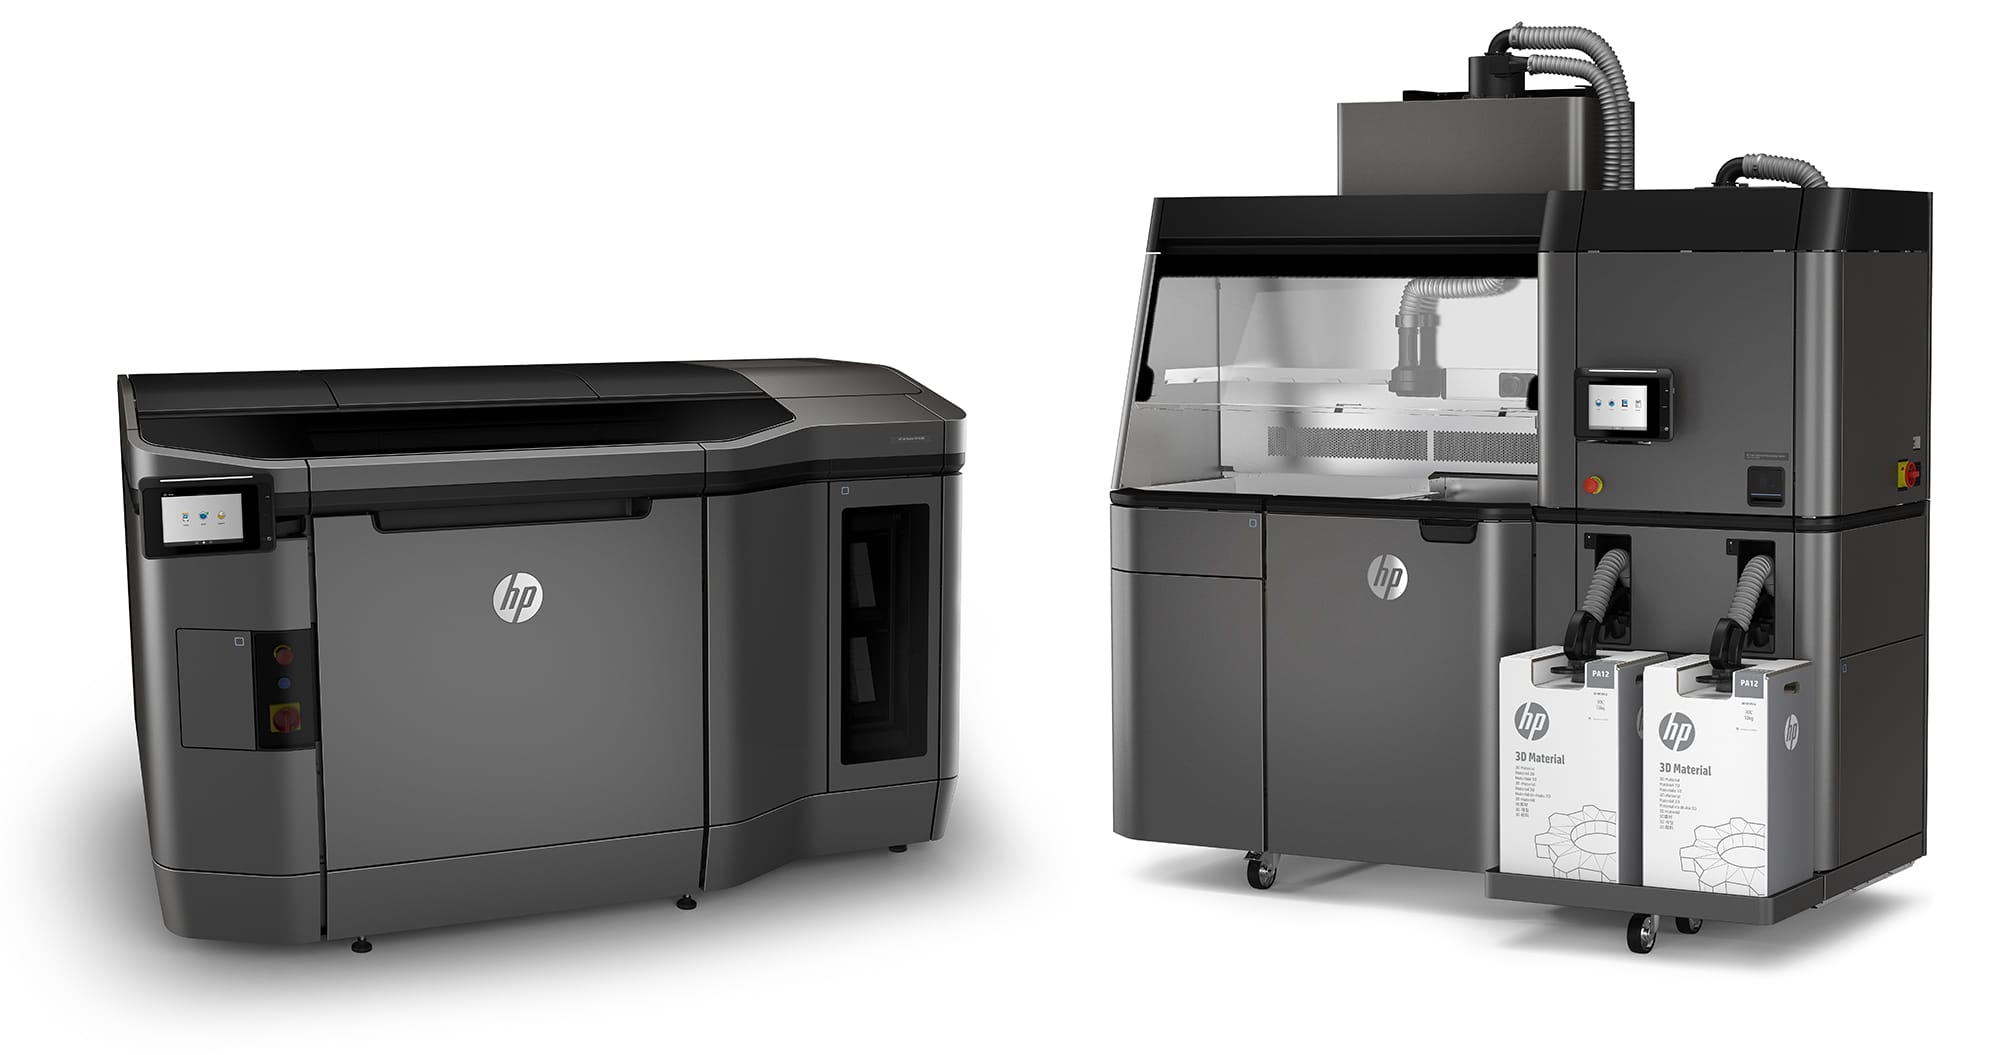 , Forecast 3D To 3D Print Up To 600,000 Parts Weekly with HP Equipment